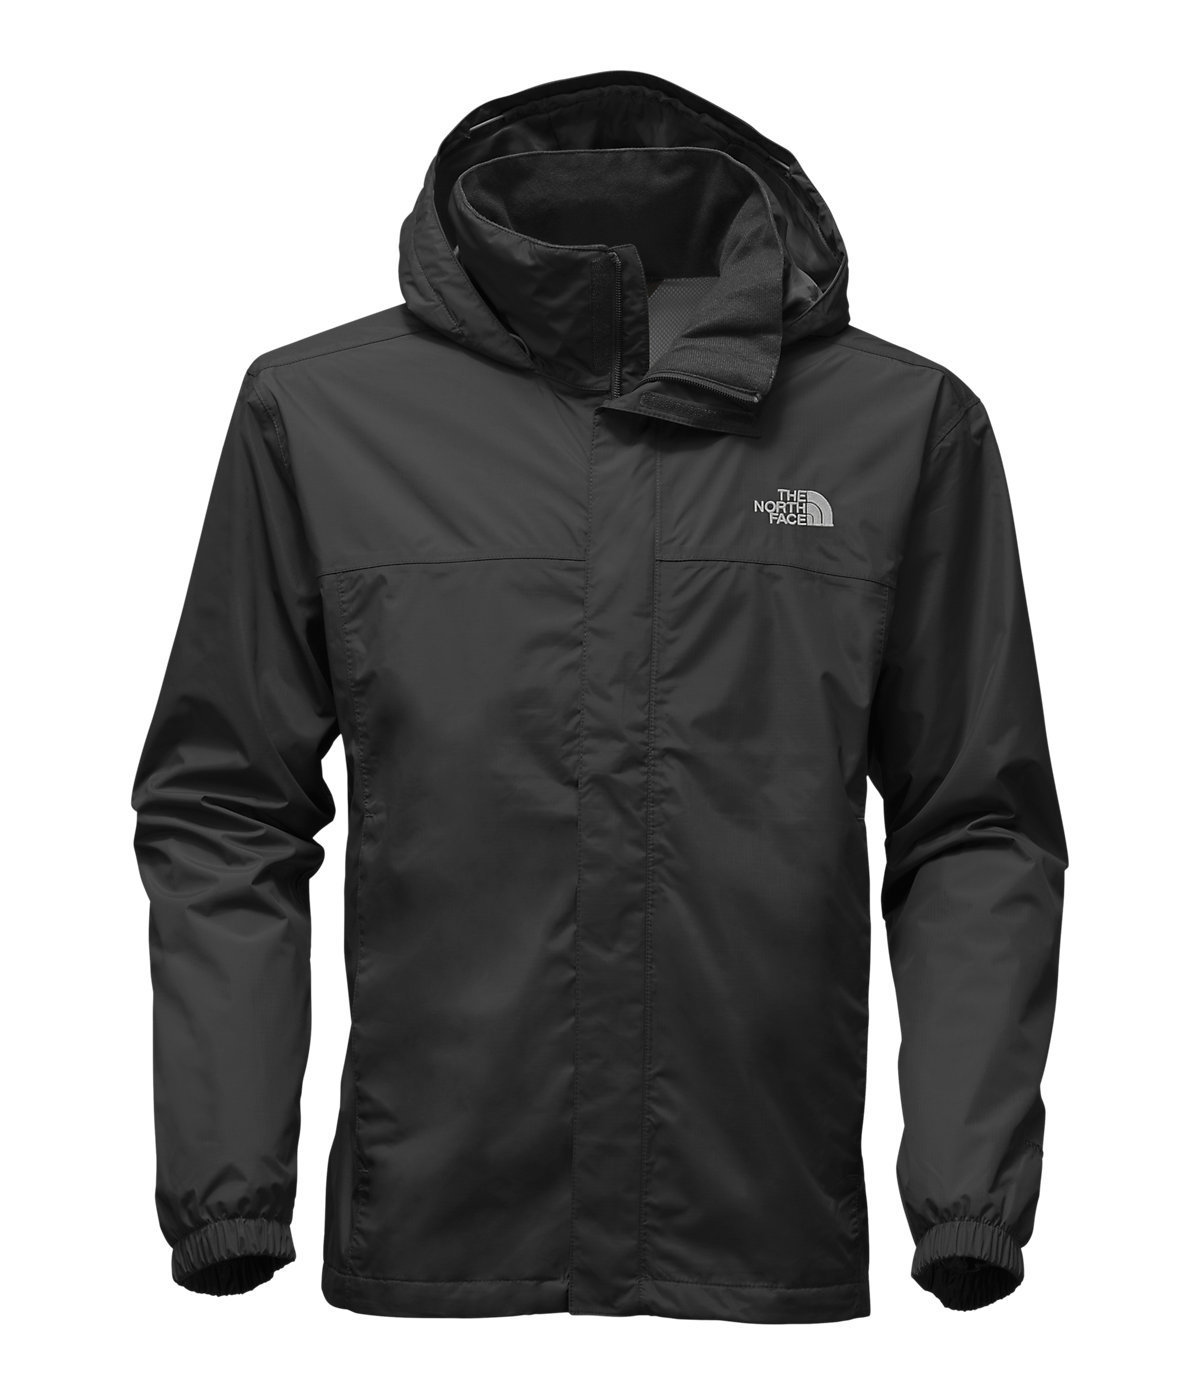 The North Face Mens Resolve 2 Waterproof Jacket - TNF Black a6d41e934